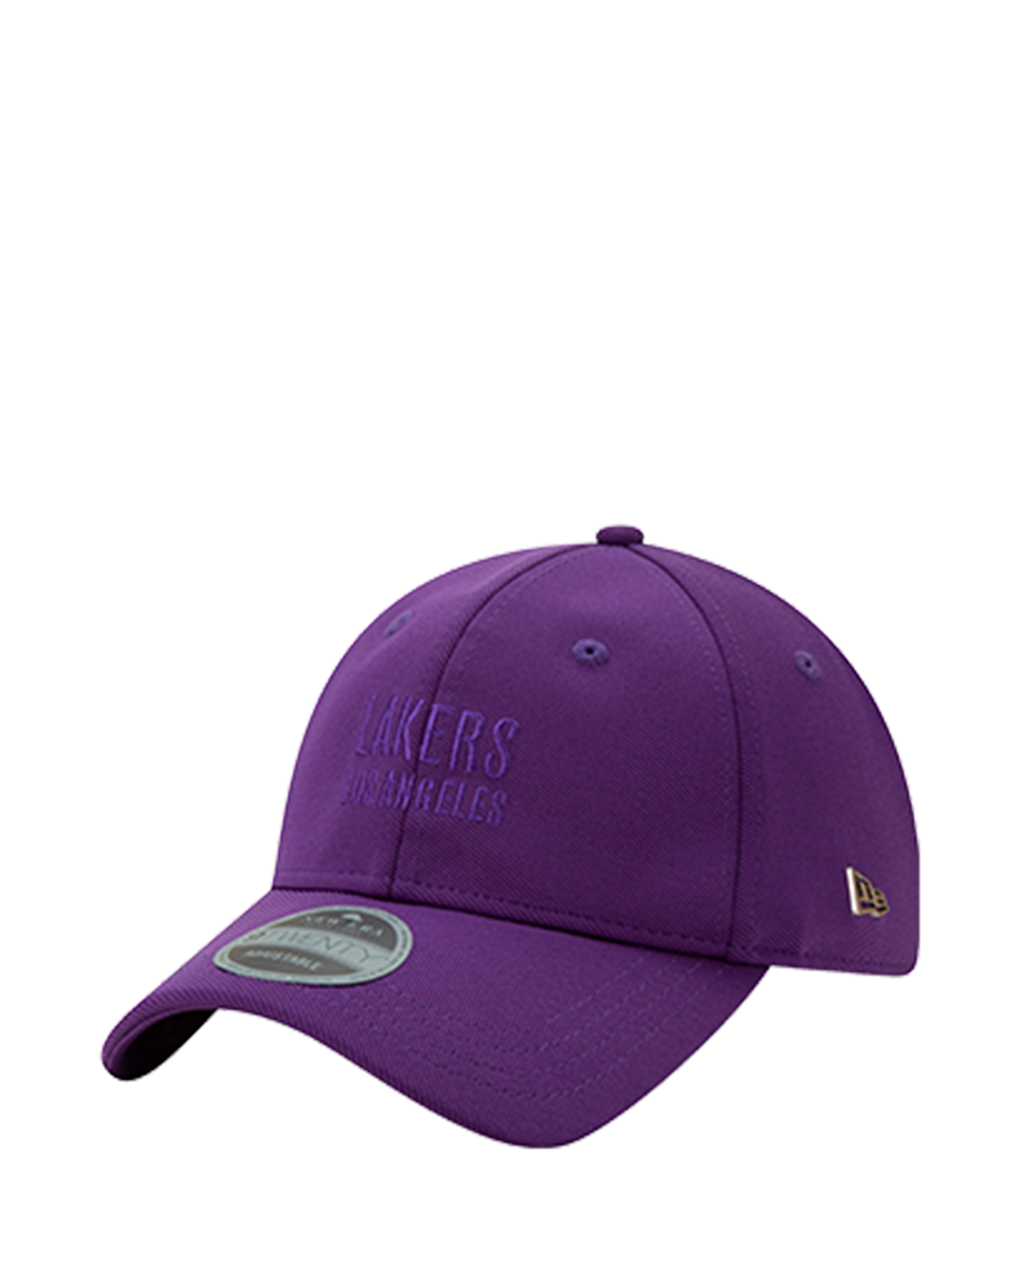 Los Angeles Lakers 9TWENTY BL Suit Adjustable Cap - Purple